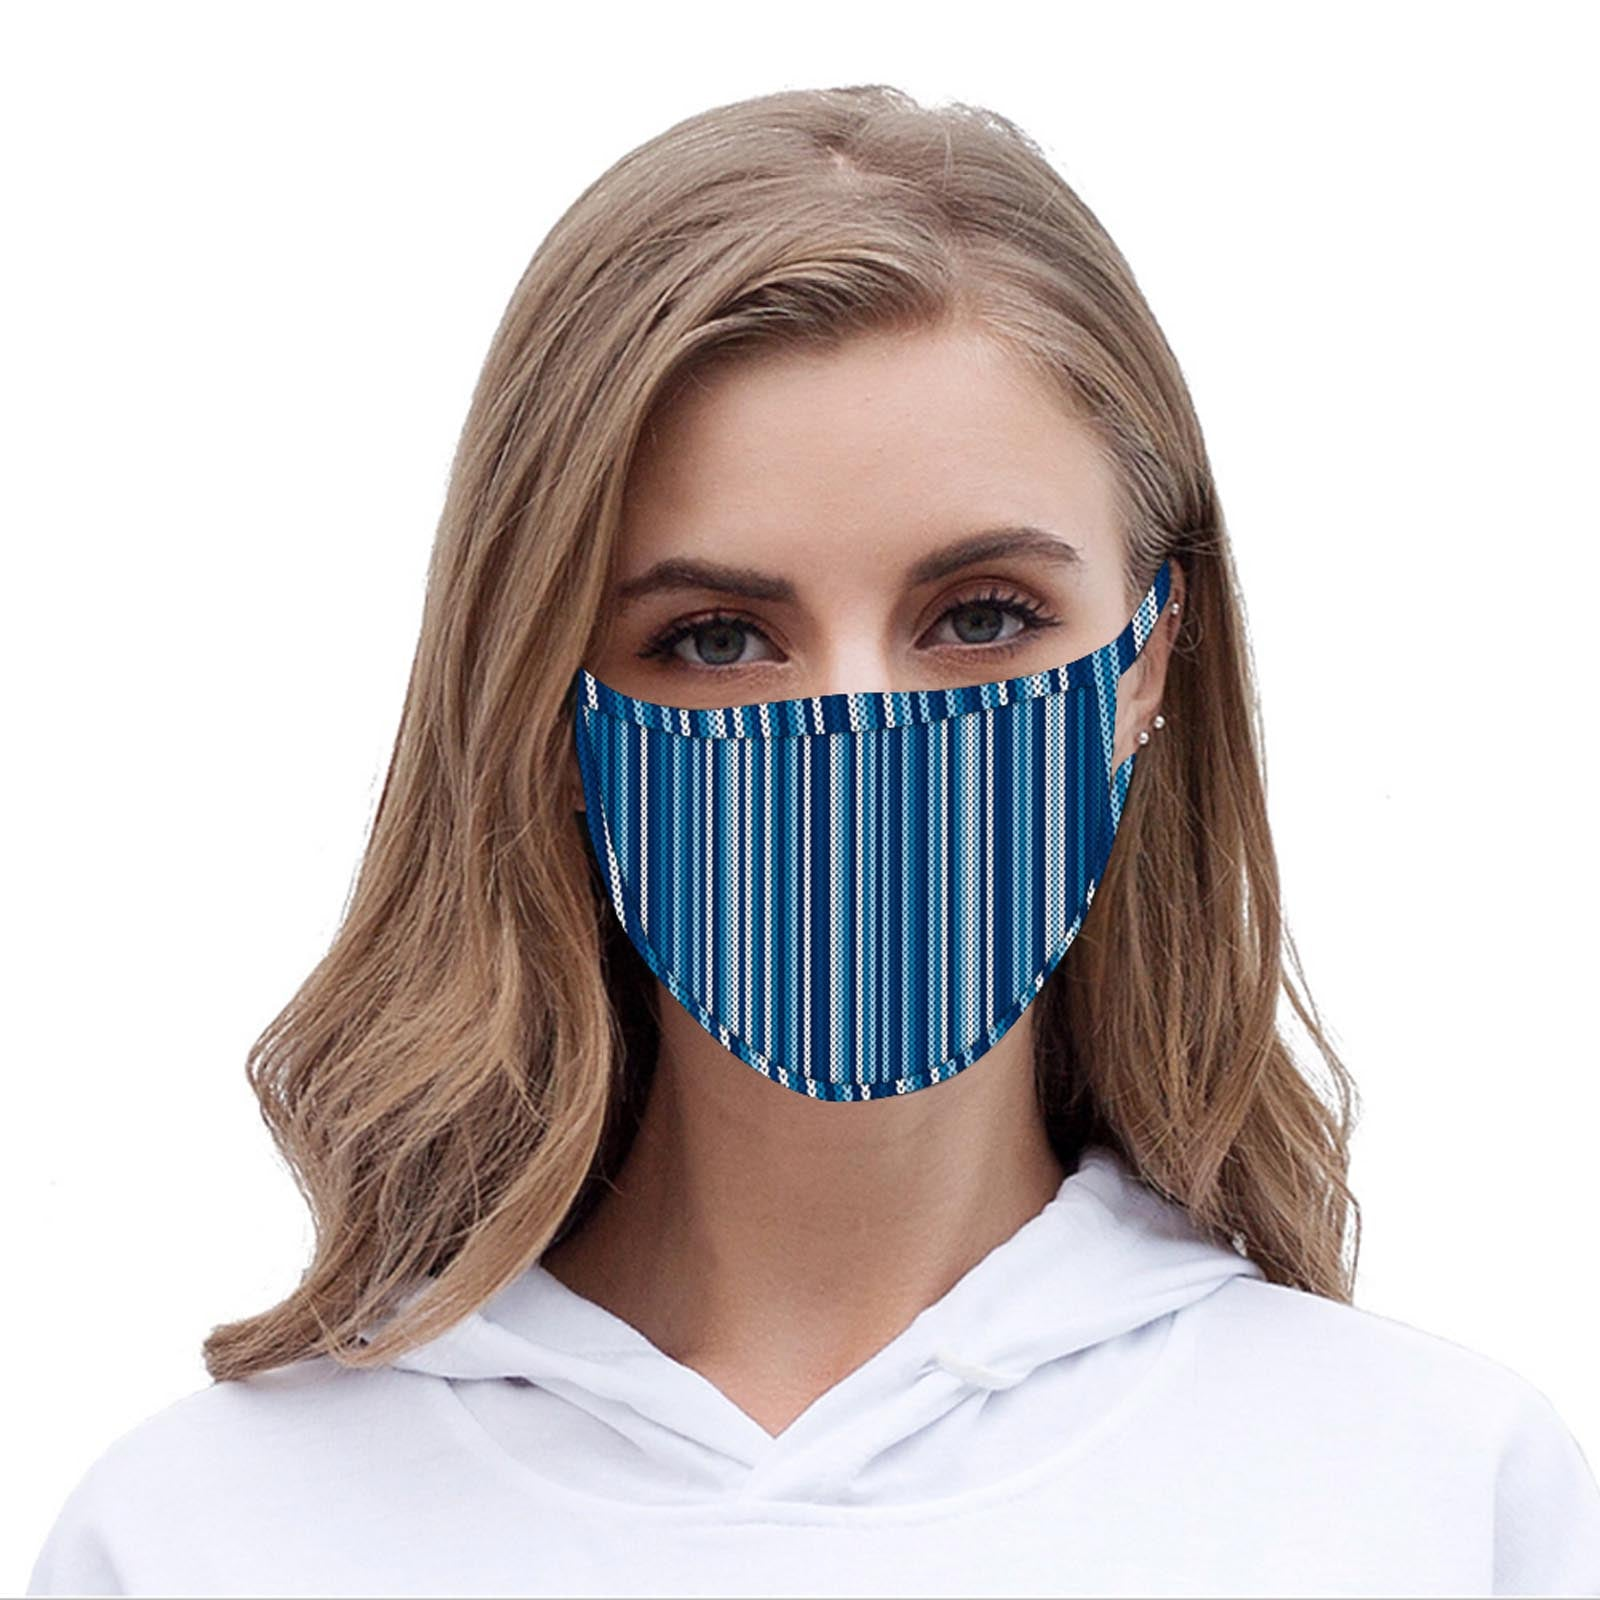 FCM-062  American Bling Blue Stripe Print Cloth Face Mask 1Pcs